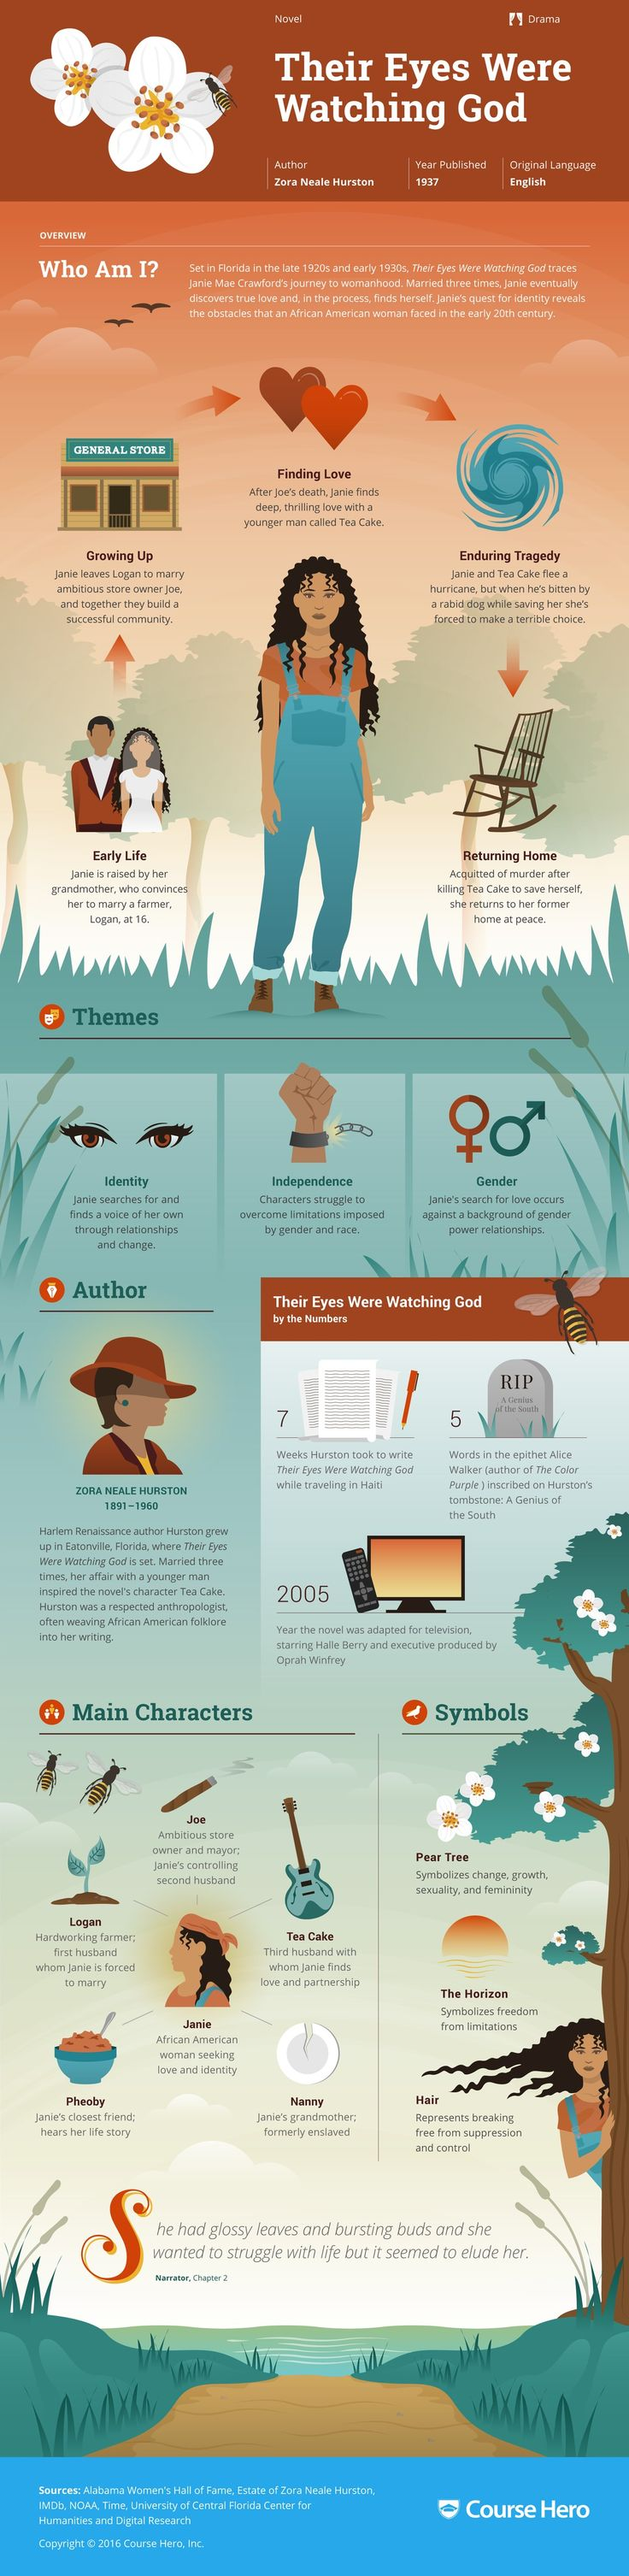 Why didn't I think of this?! Doing an infographic about a book. Or a genre...